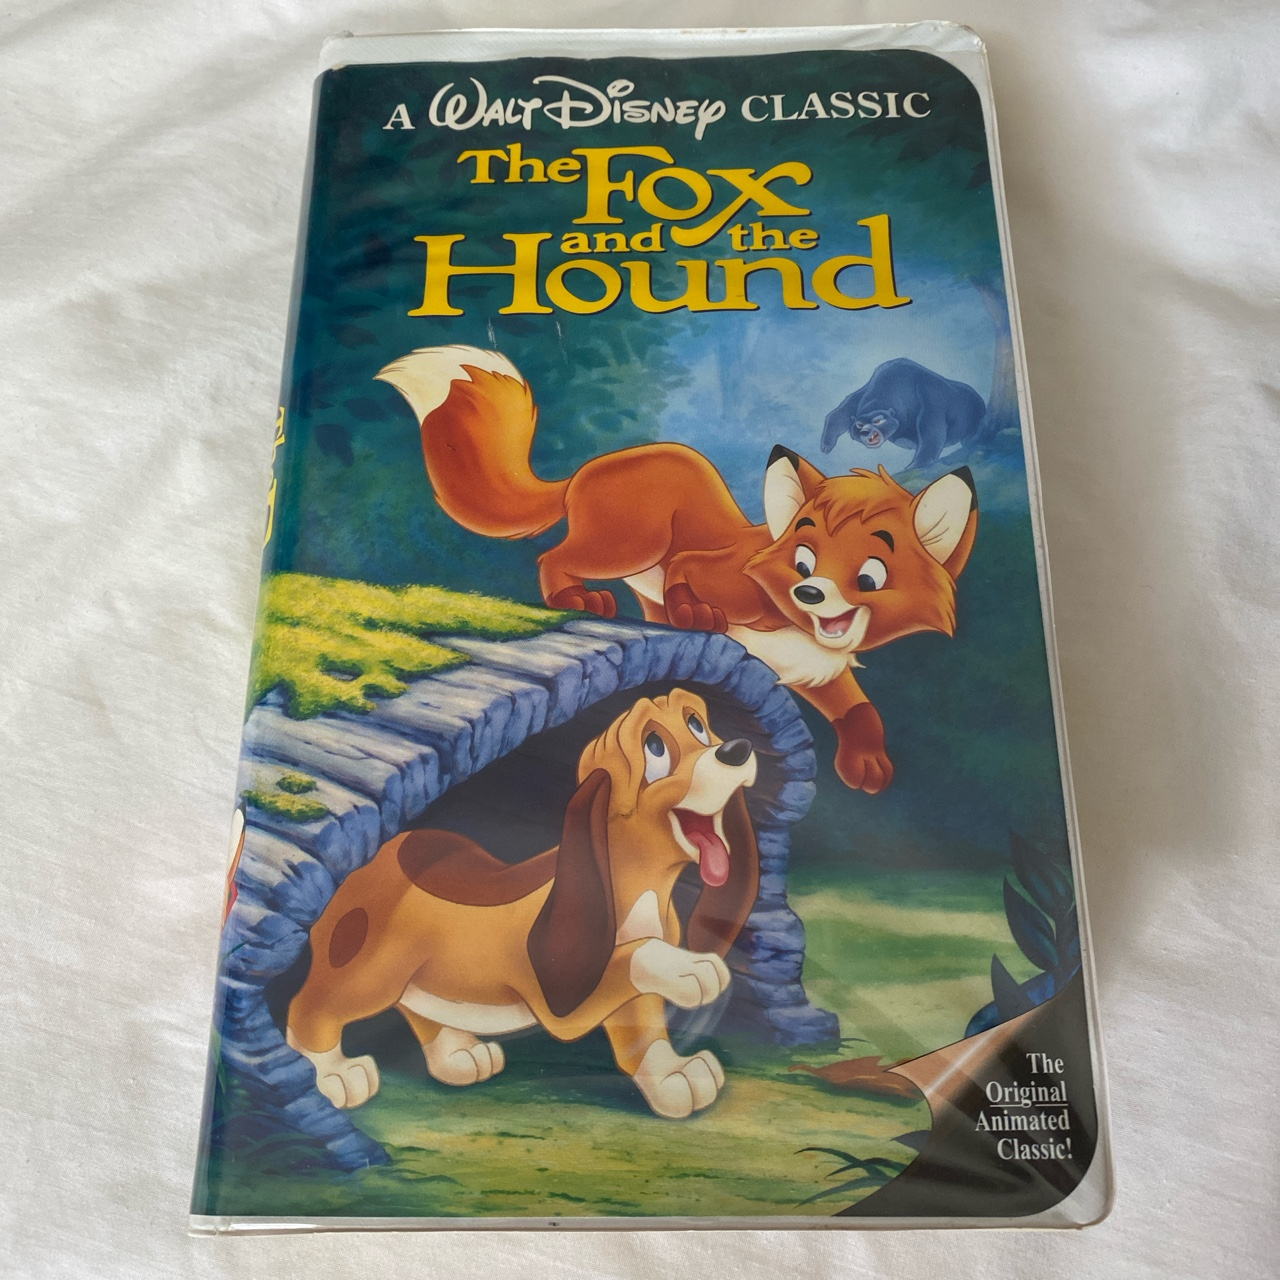 Product Image 1 - VHS of the 1981 animated